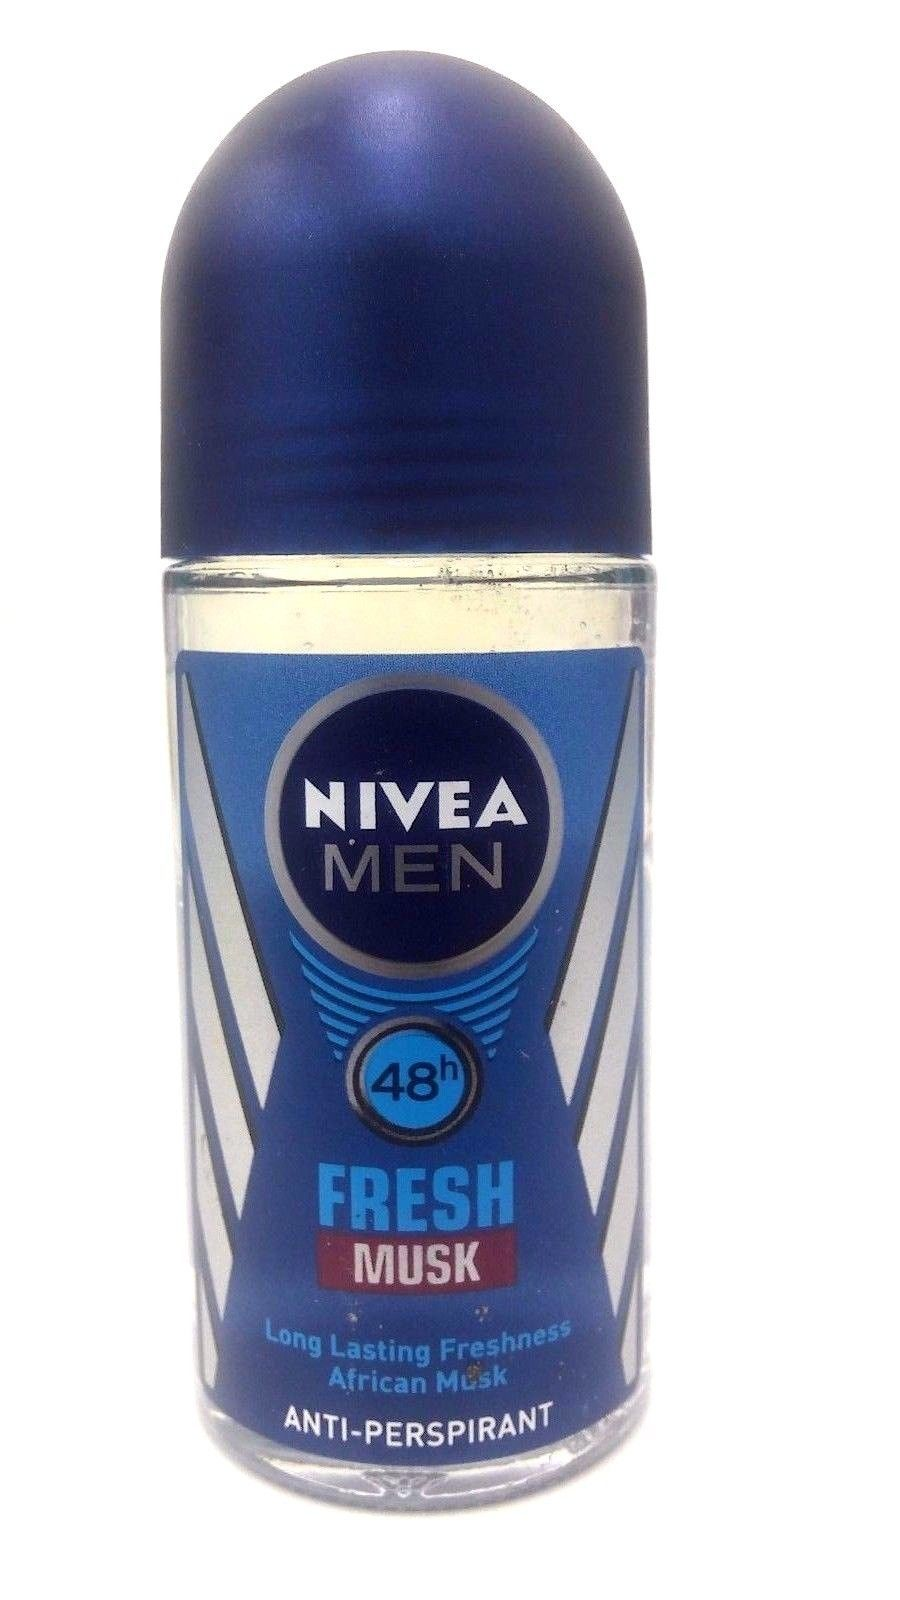 Nivea Men Fresh Musk Scent 48 Hr And 50 Similar Items Deodorant Invisible Black White Roll On Ml S L1600